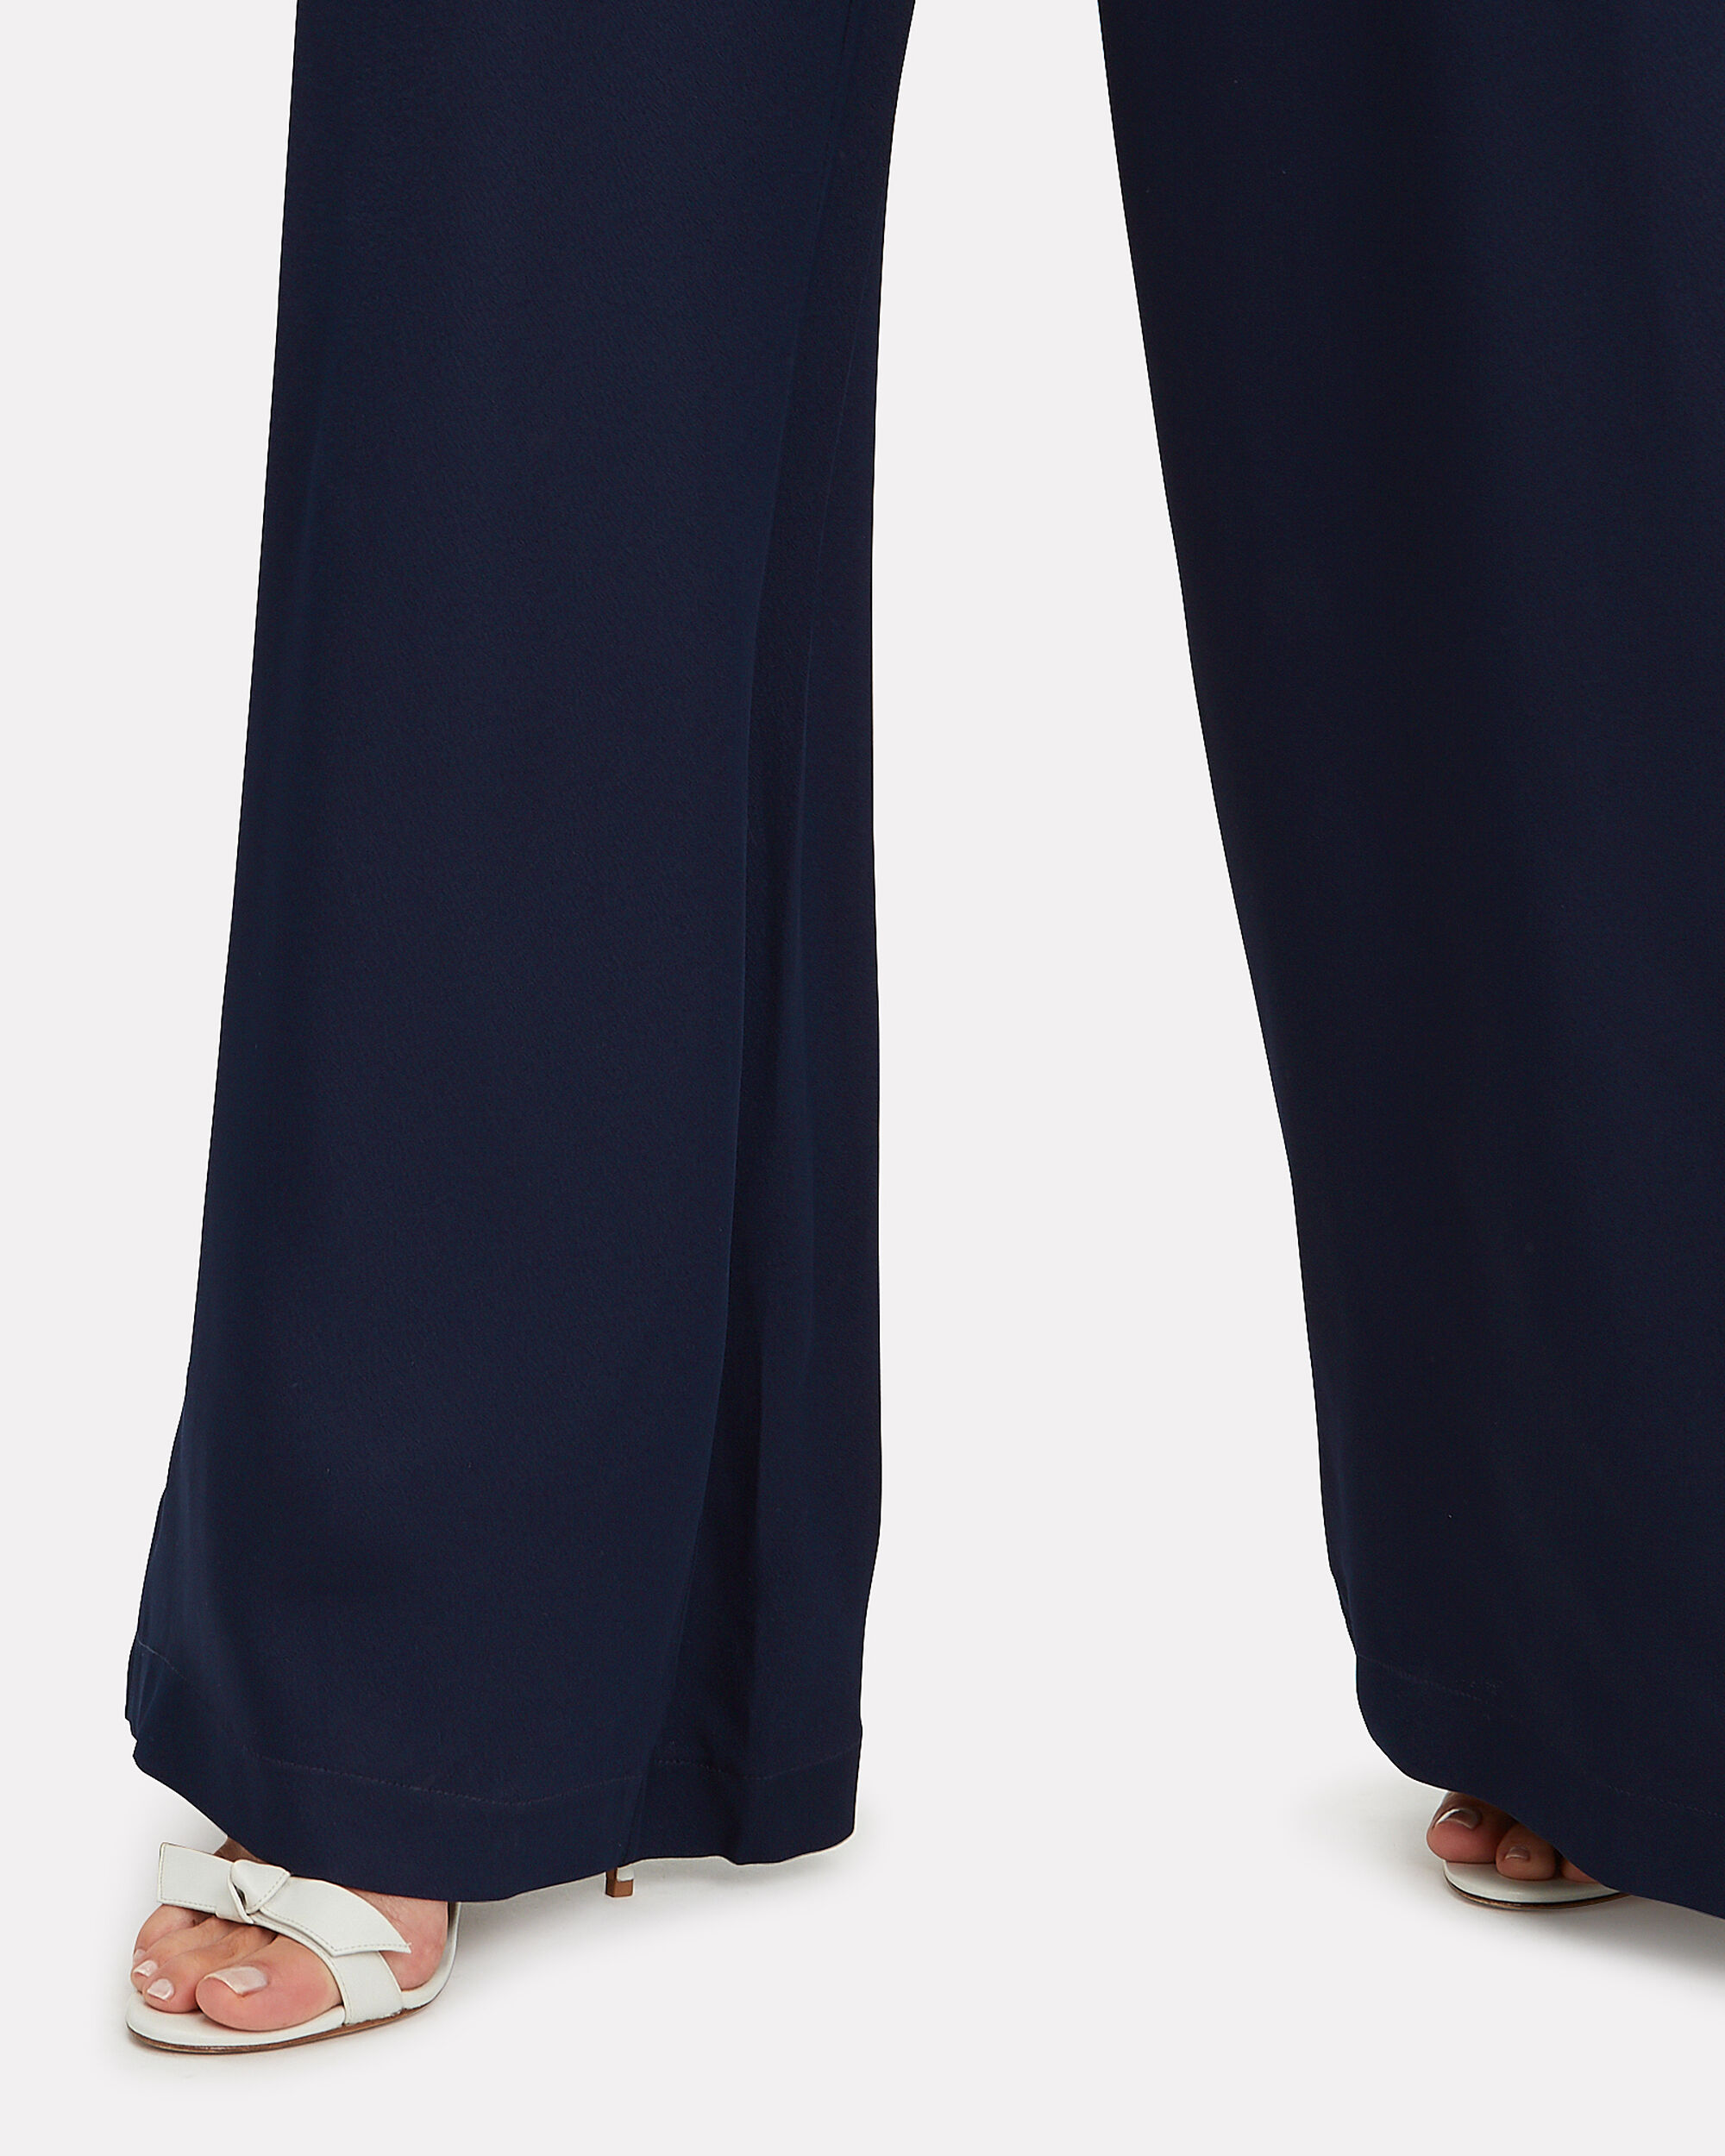 Coco Trousers, NAVY, hi-res